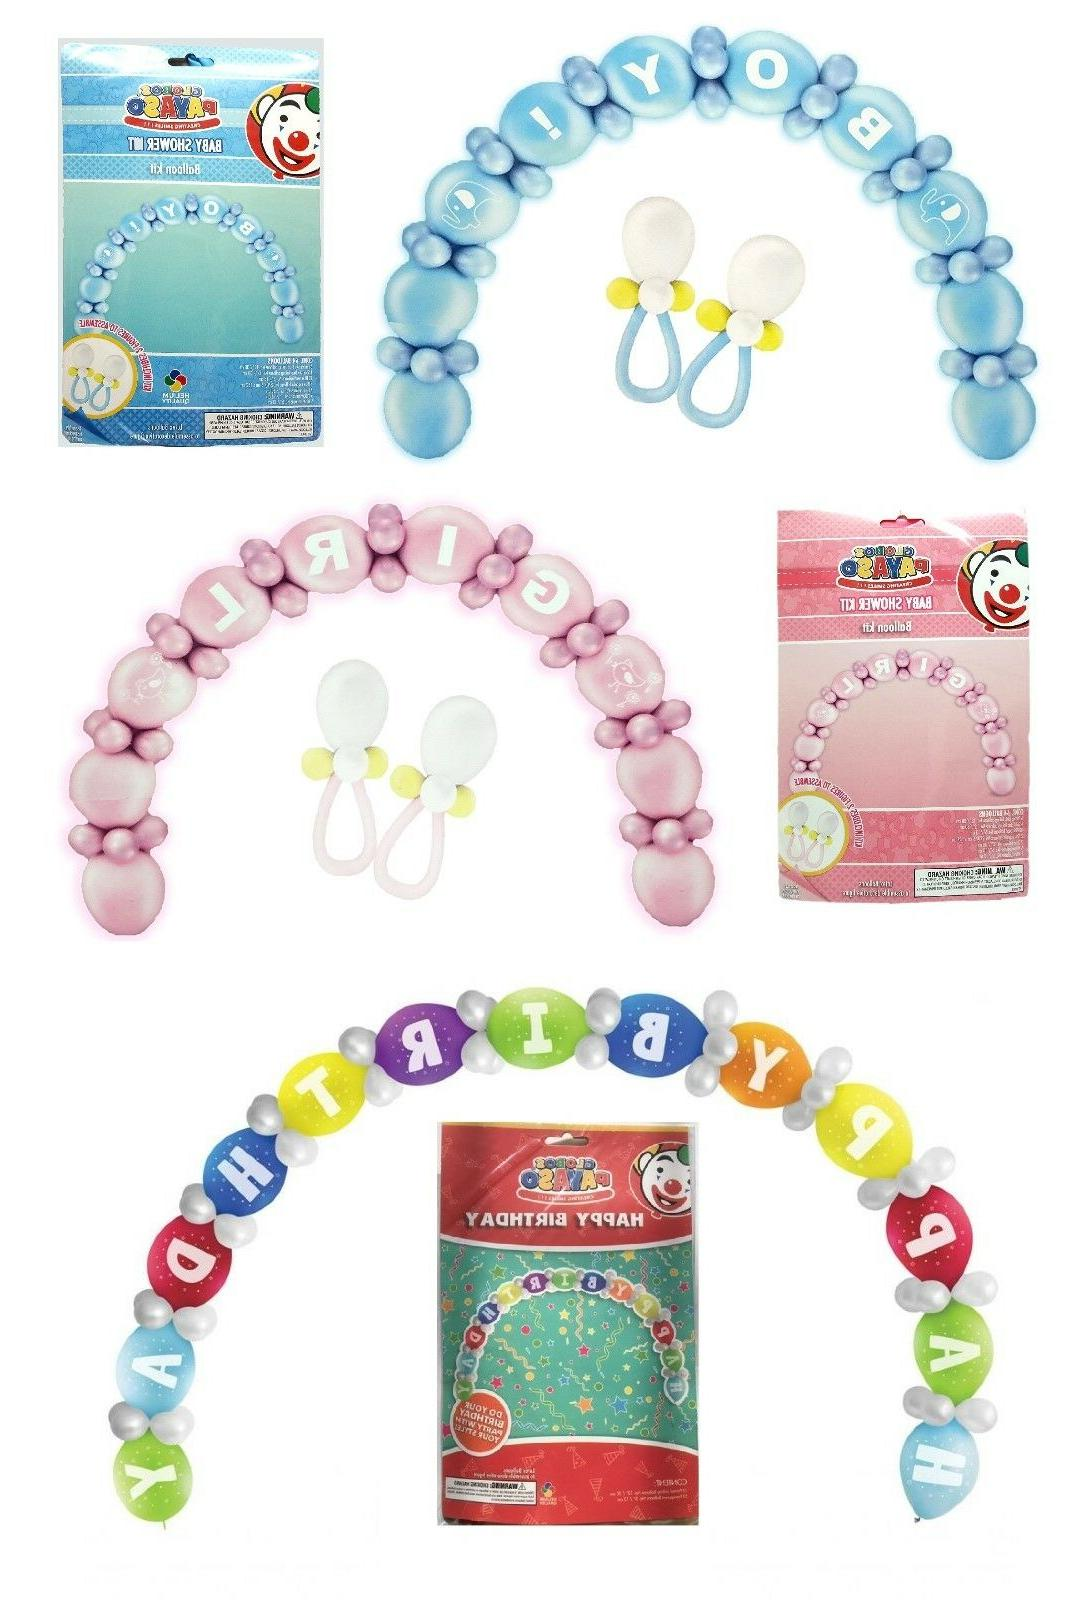 Balloon Arch DIY Party Decoration Kit  - Helium Quality